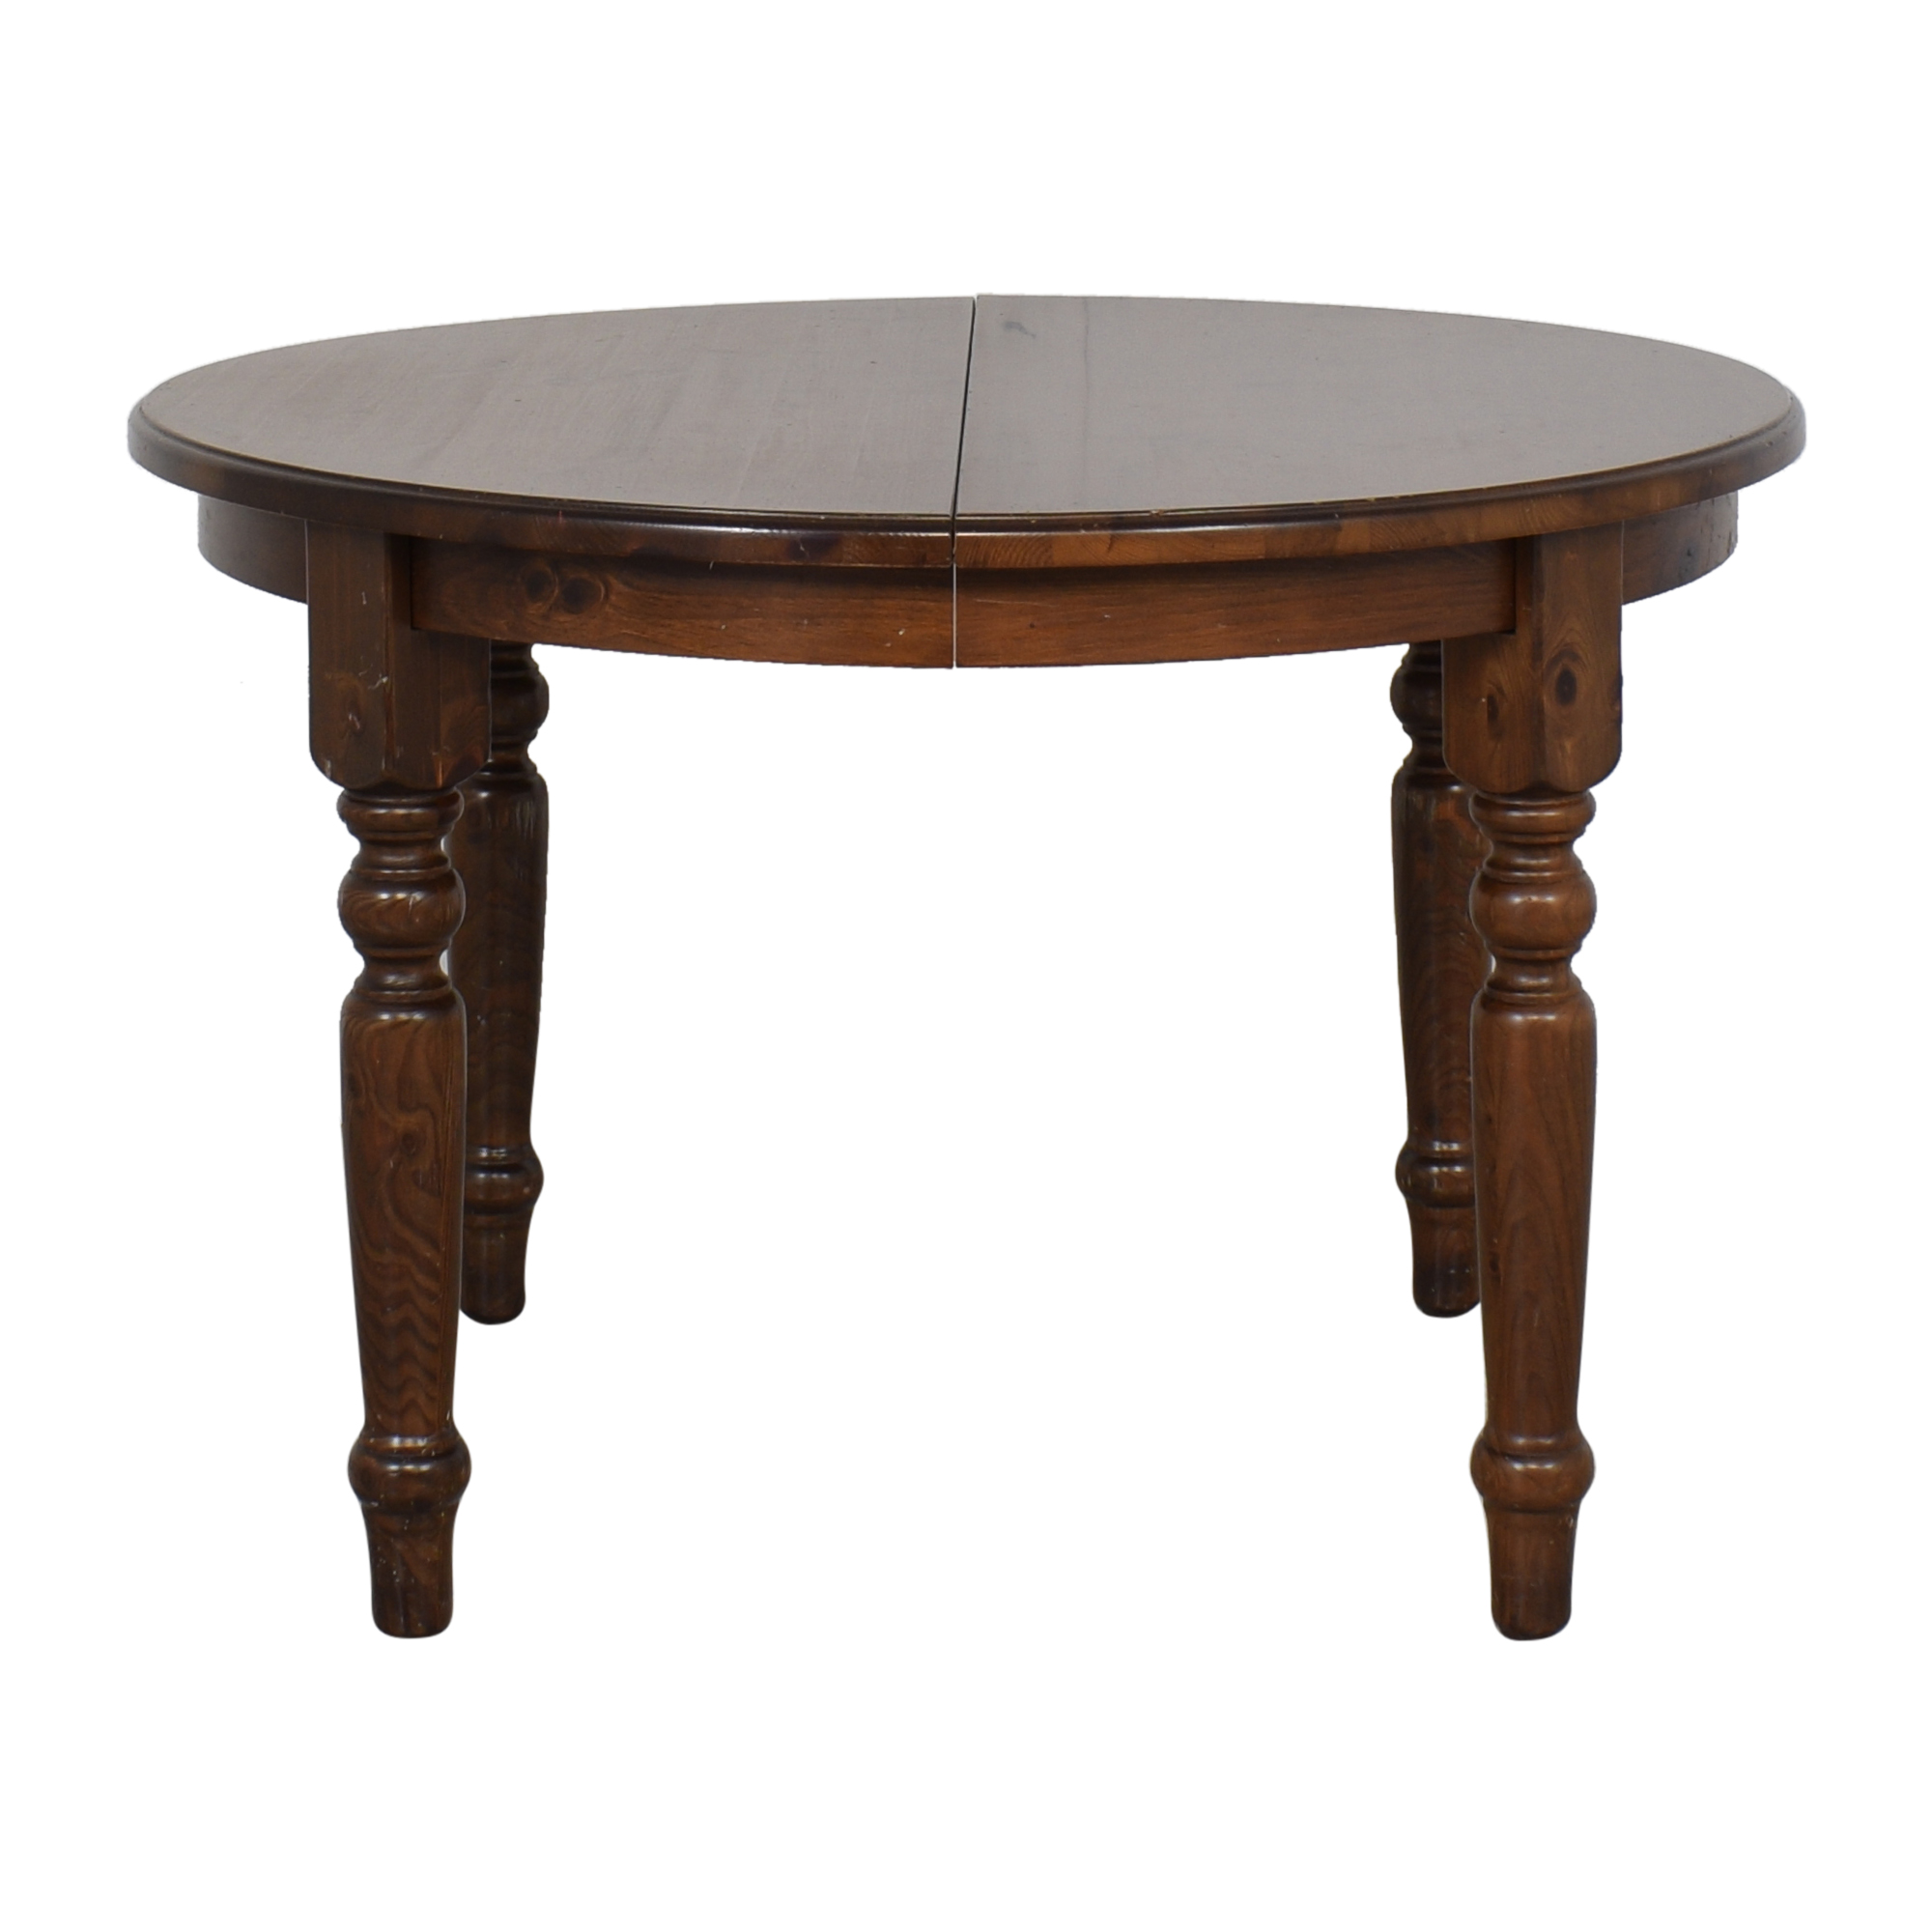 Pottery Barn Pottery Barn Evelyn Extending Dining Table ct